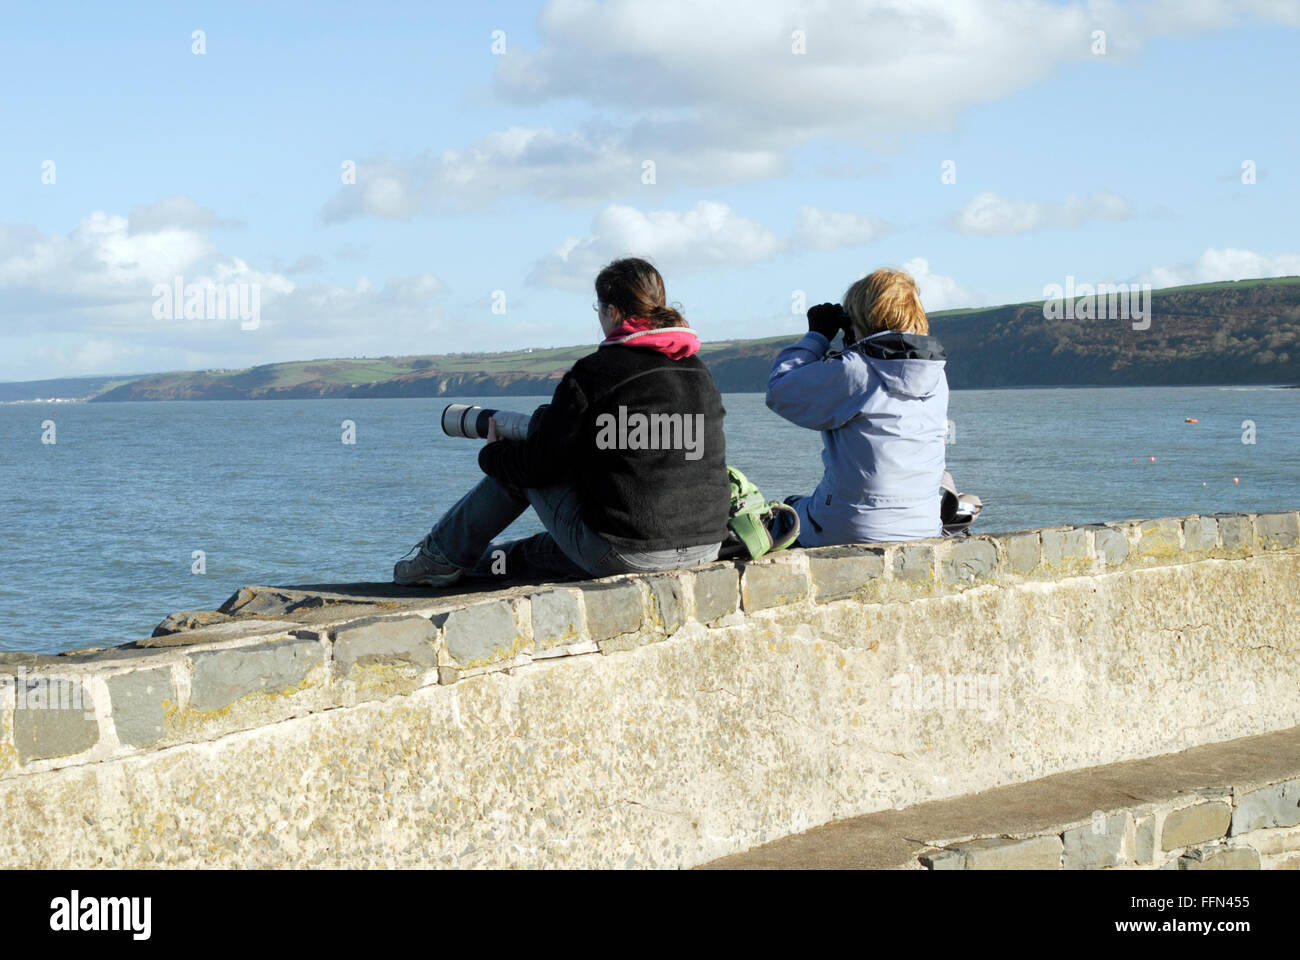 Two young women on the lookout for marine wildlife at Newquay, West Wales. - Stock Image